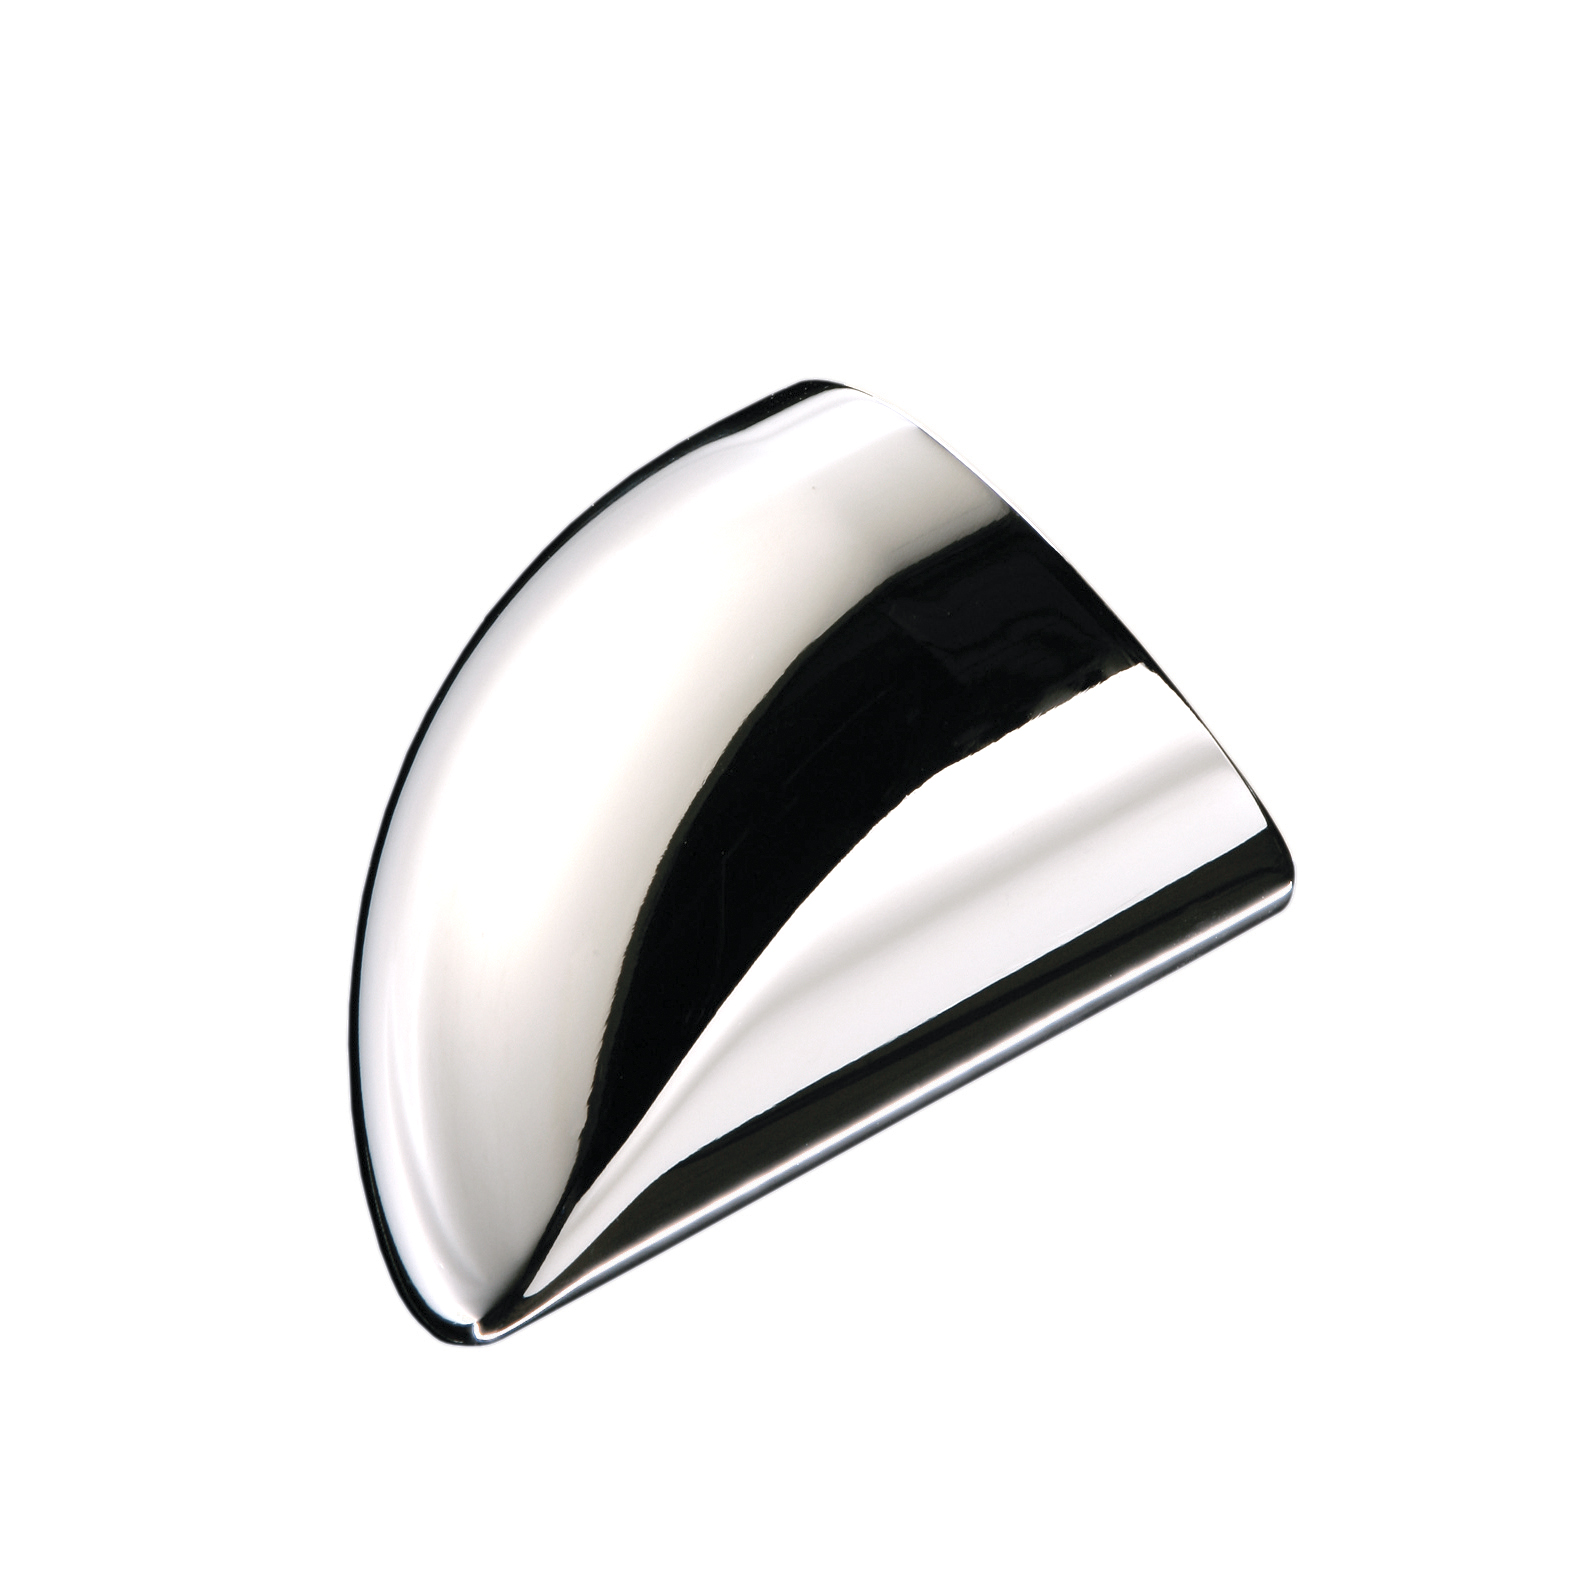 1 Fusion Wall Handrail End Cap Chrome Effect